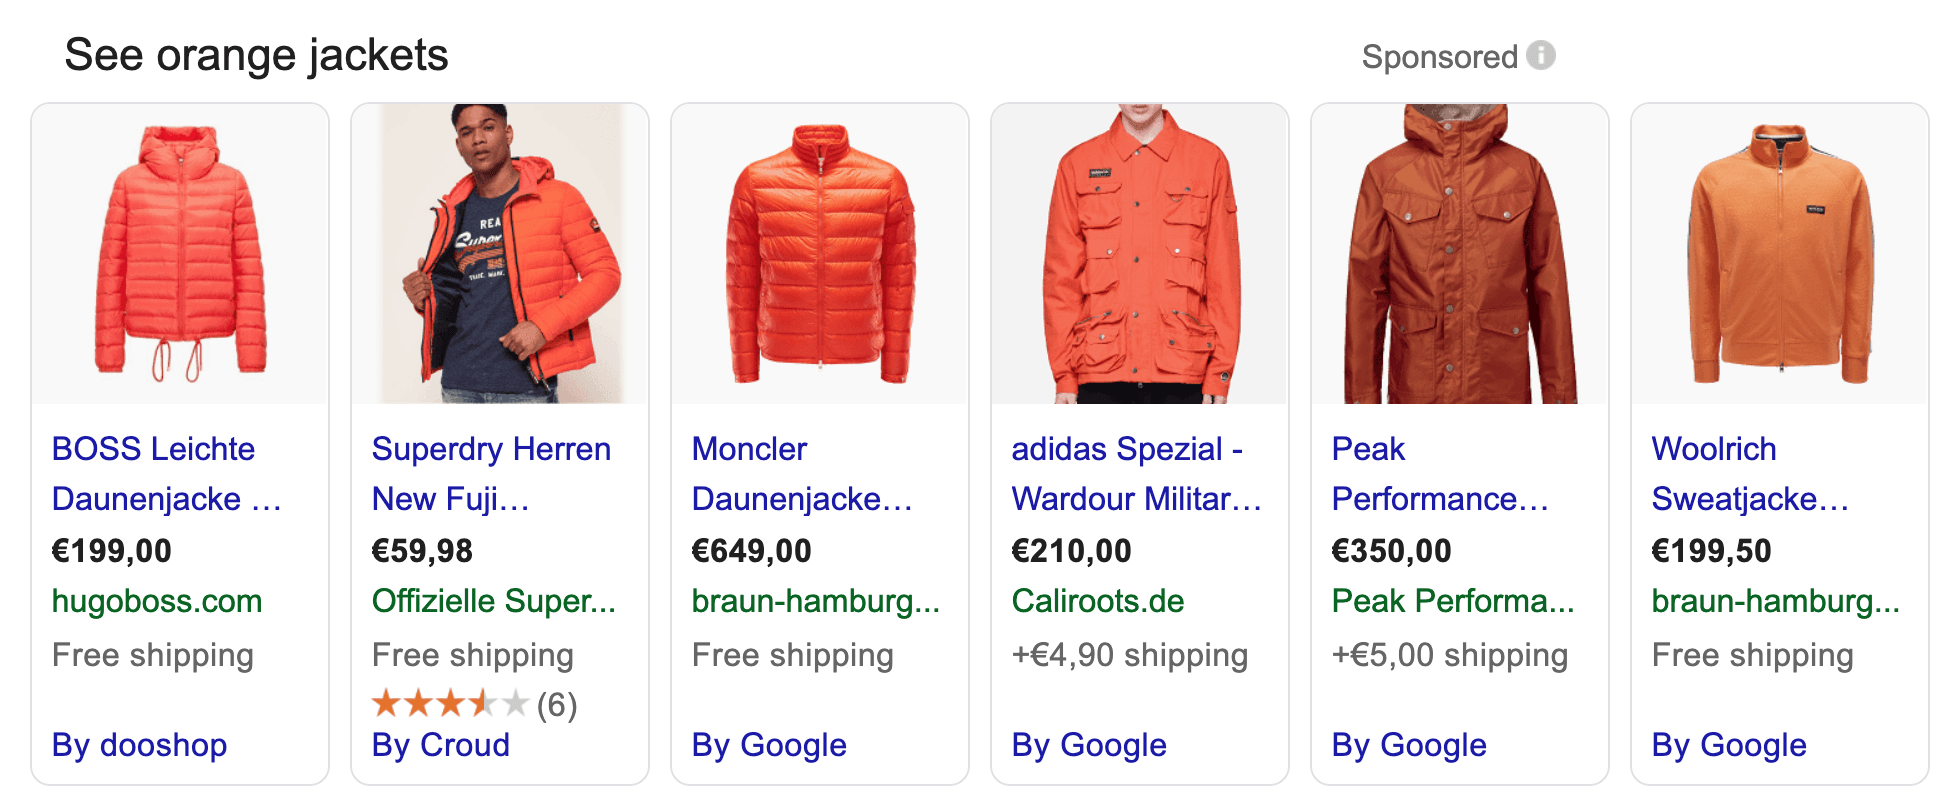 Product listing ad for orange jackets on Google